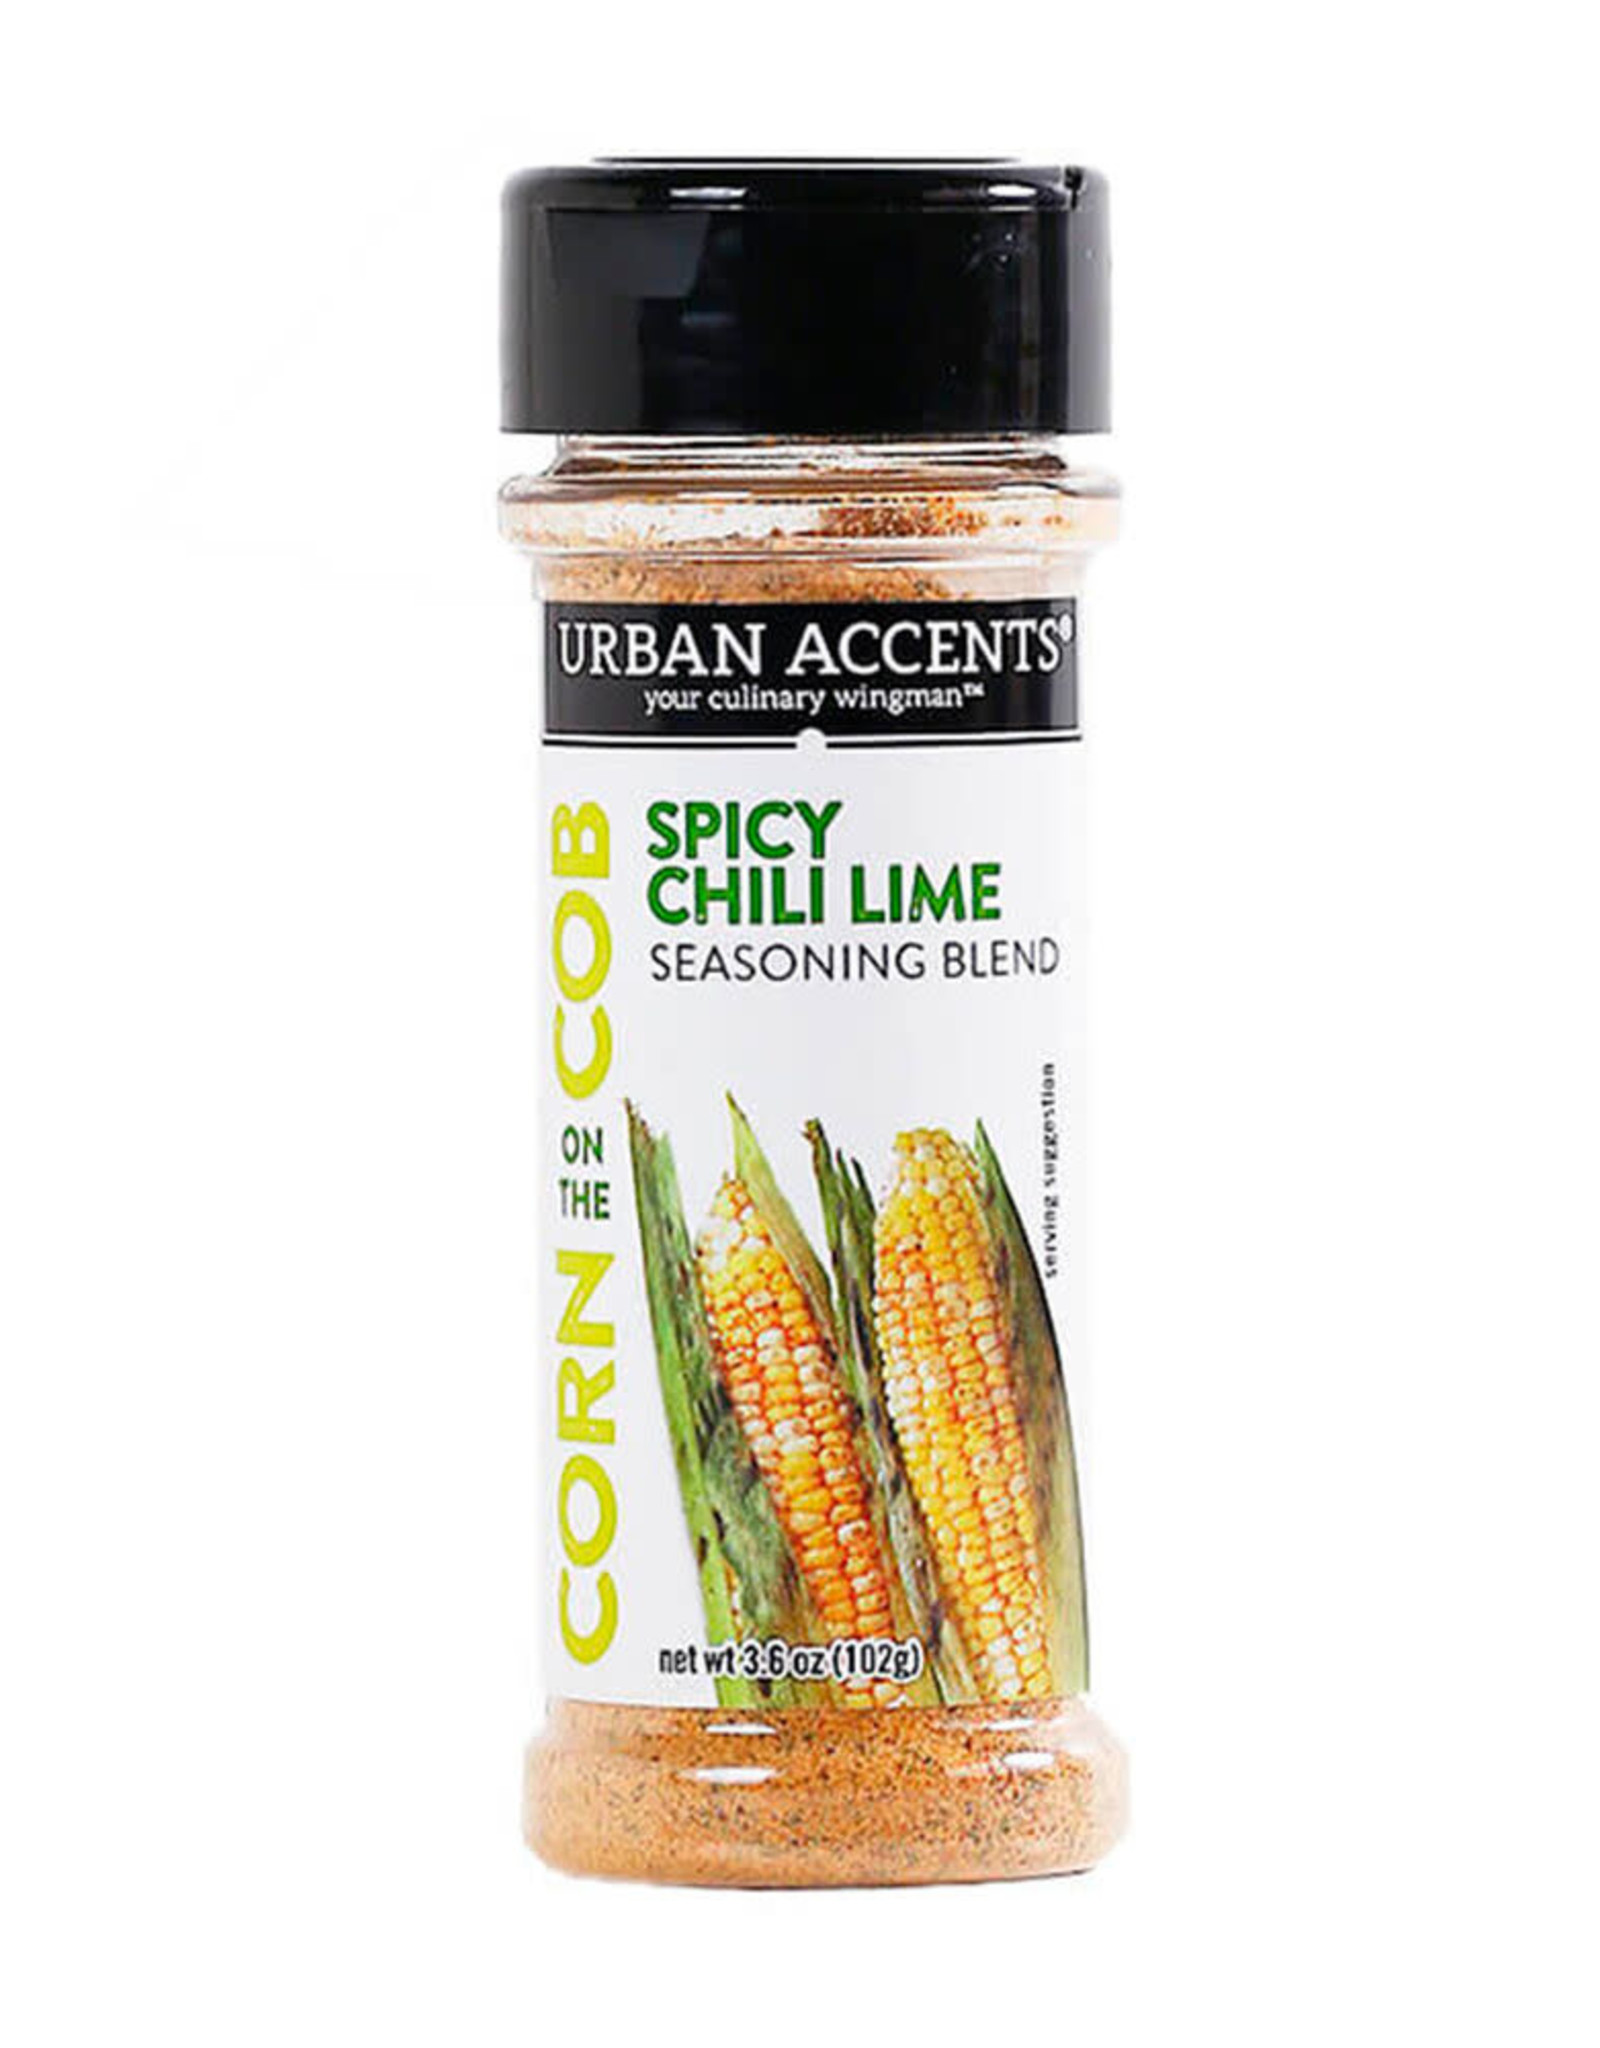 Urban Accents Corn on The Cob, Spicy Chili Lime